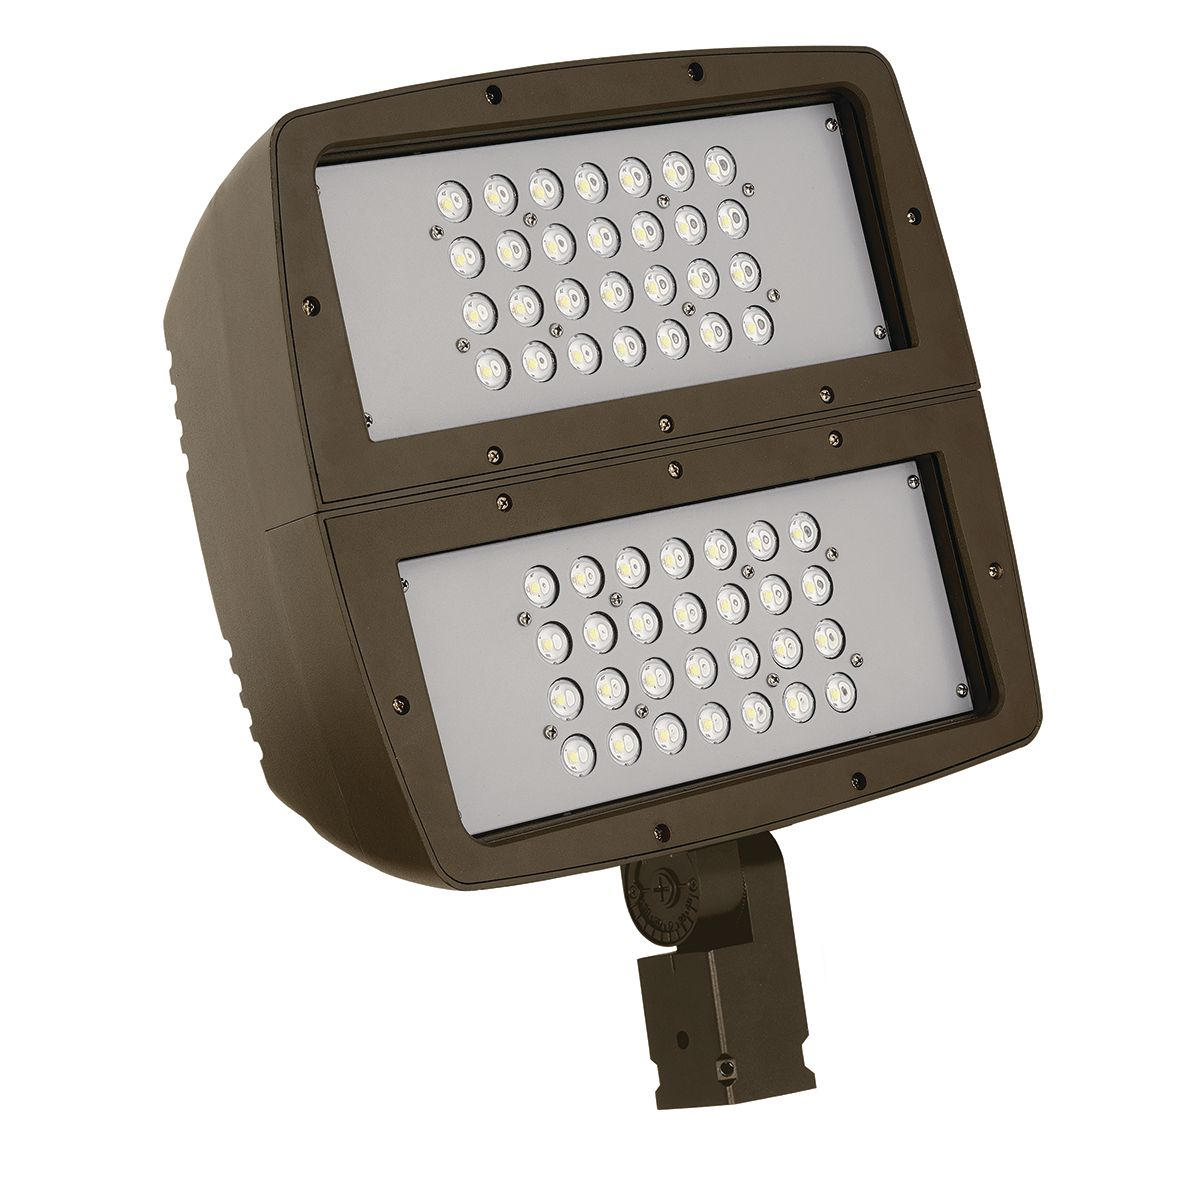 Fxl Factor Floodlight Hubbell Outdoor Lighting